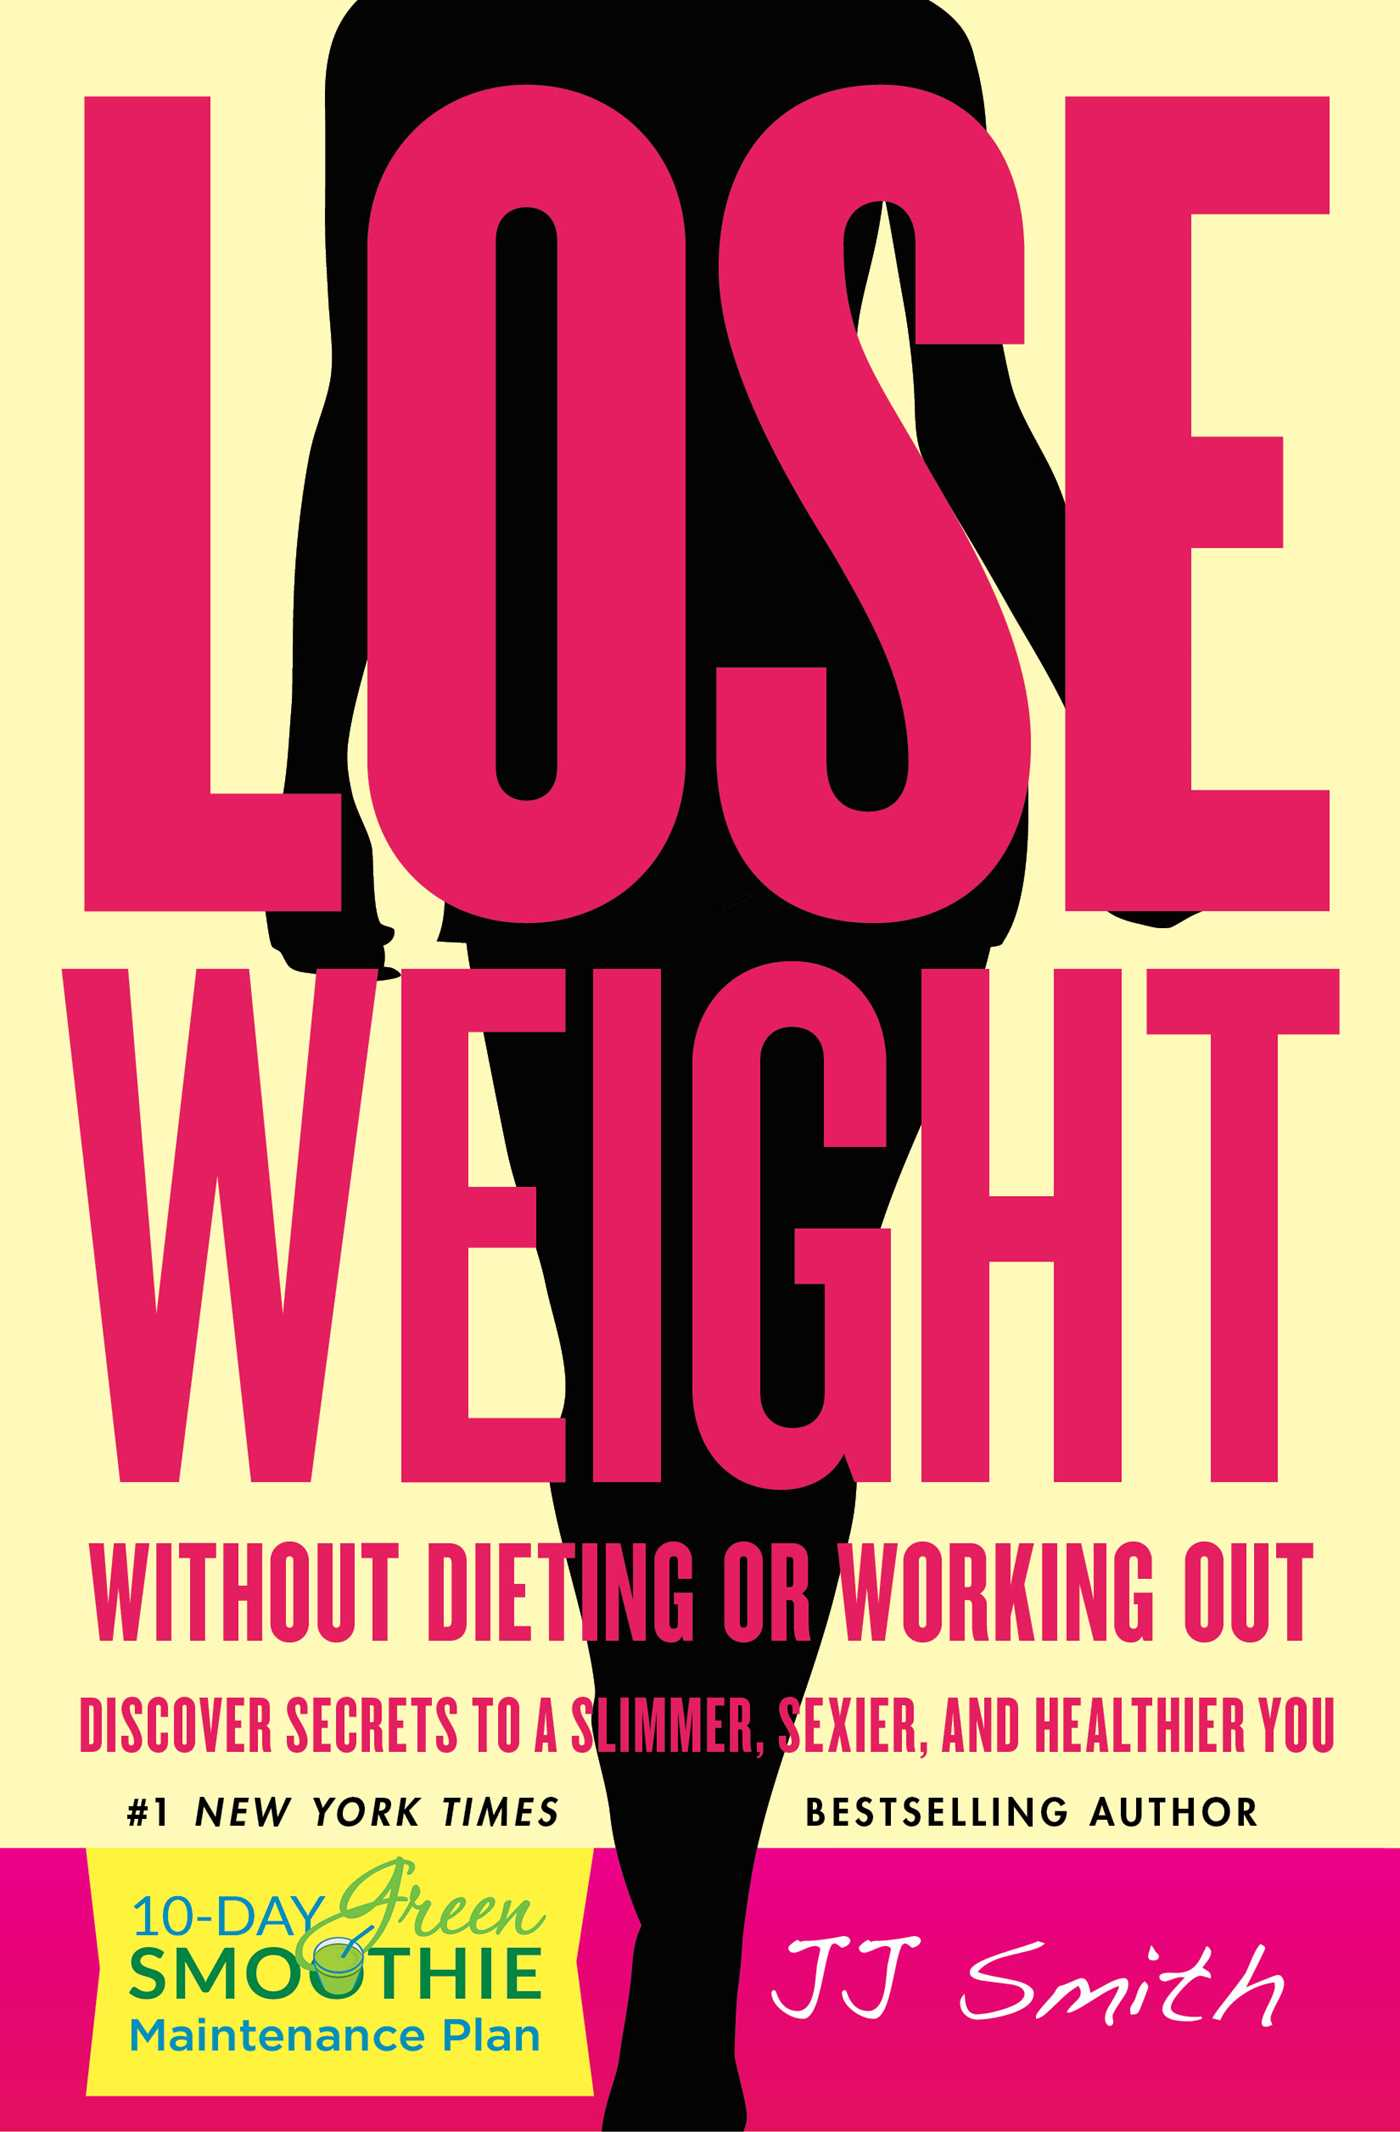 10 great ways to lose weight